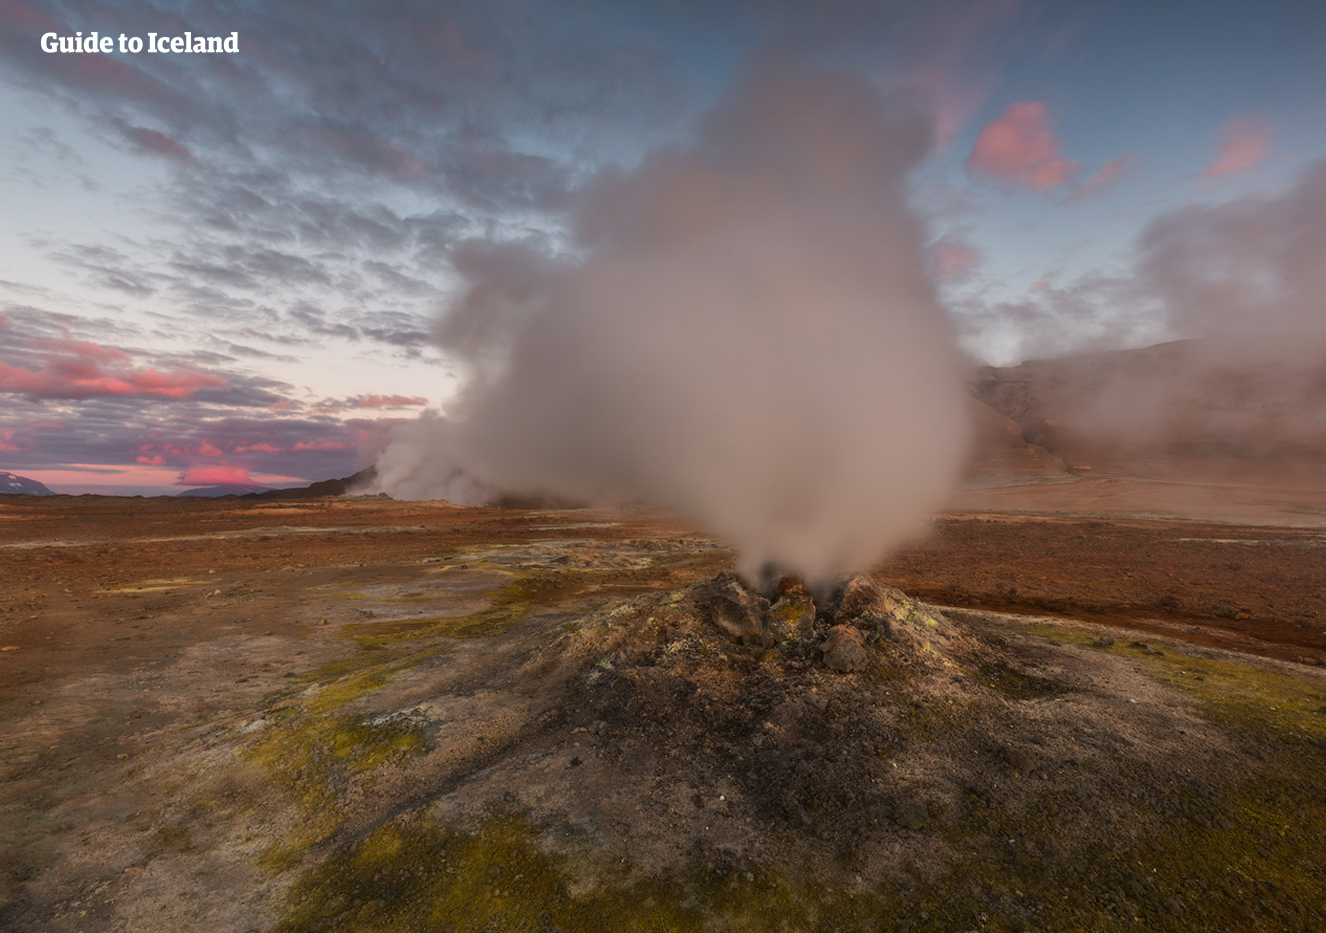 A steaming fumarole at Námaskarð pass near Lake Mývatn.